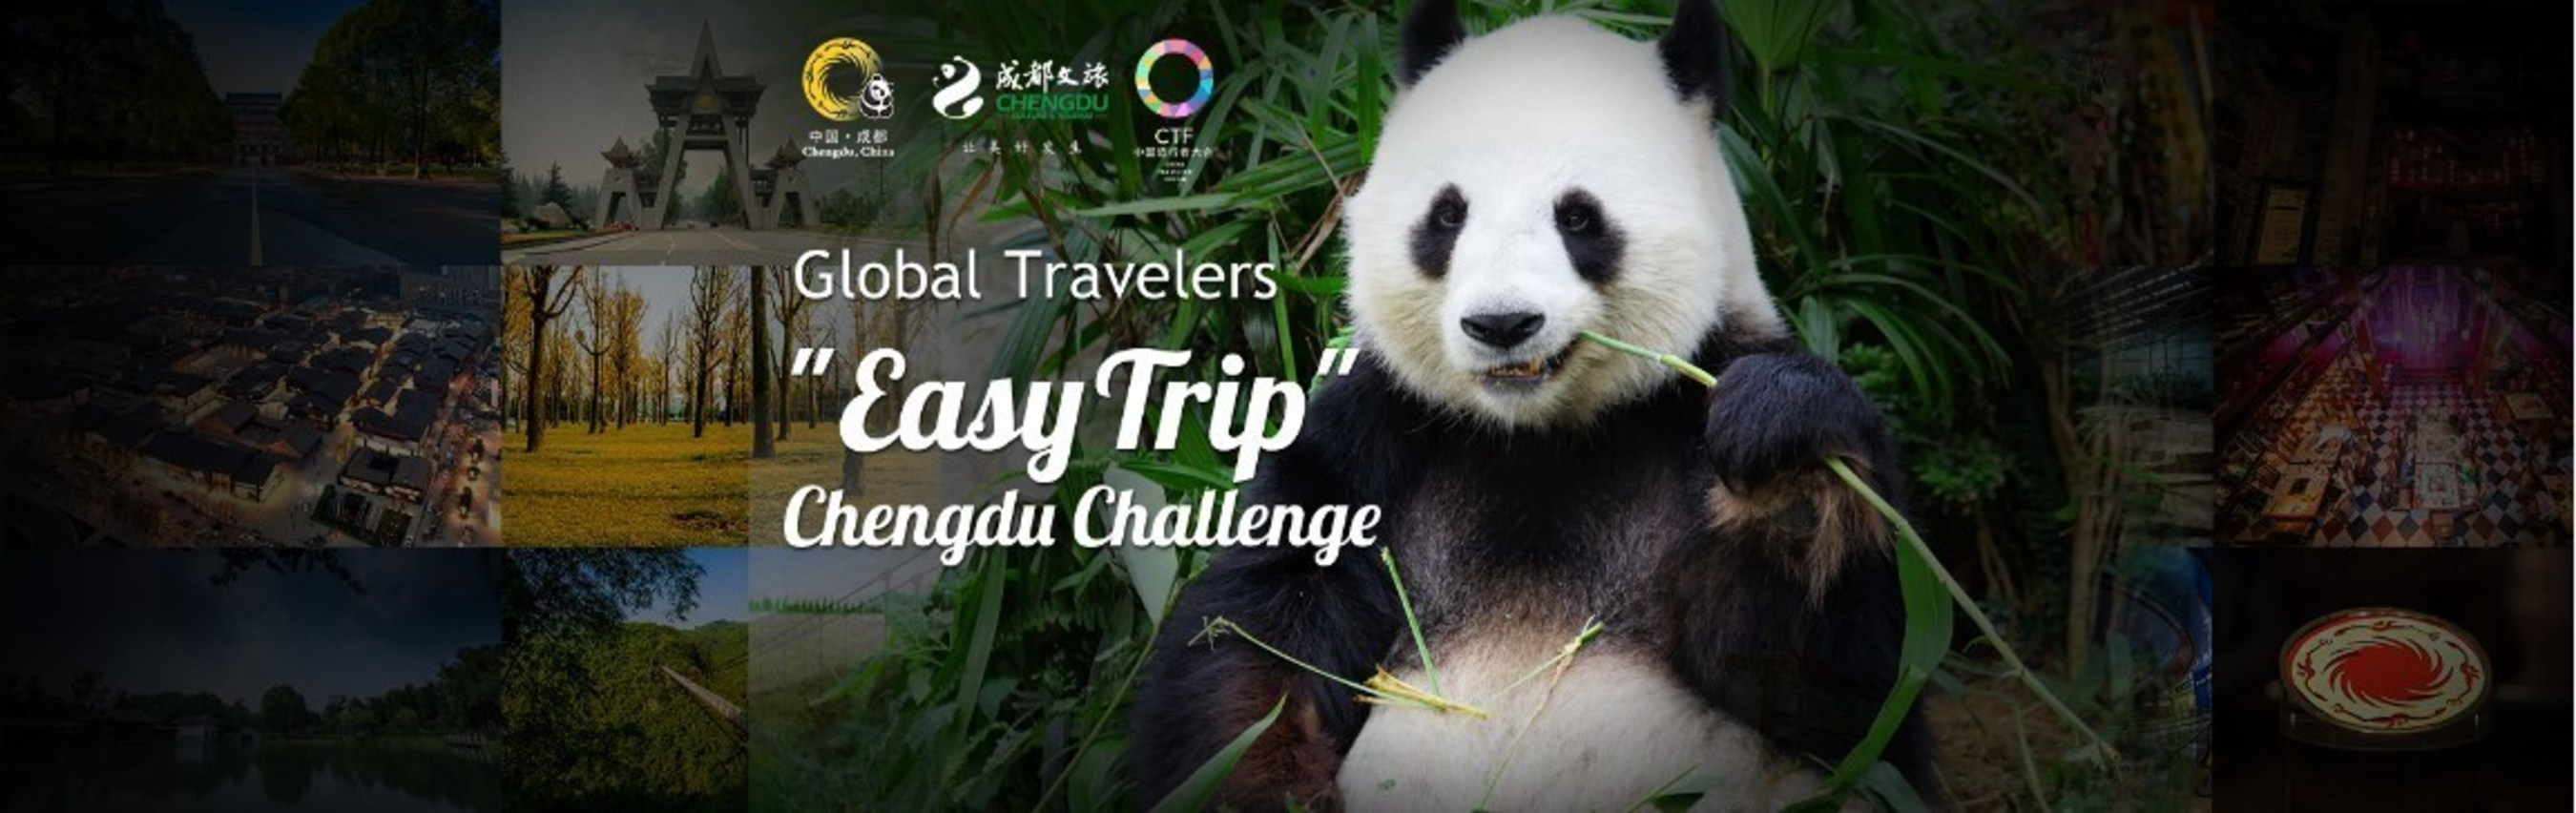 Global Travellers - Chengdu Challenge: Many travelers come to meet in Chengdu